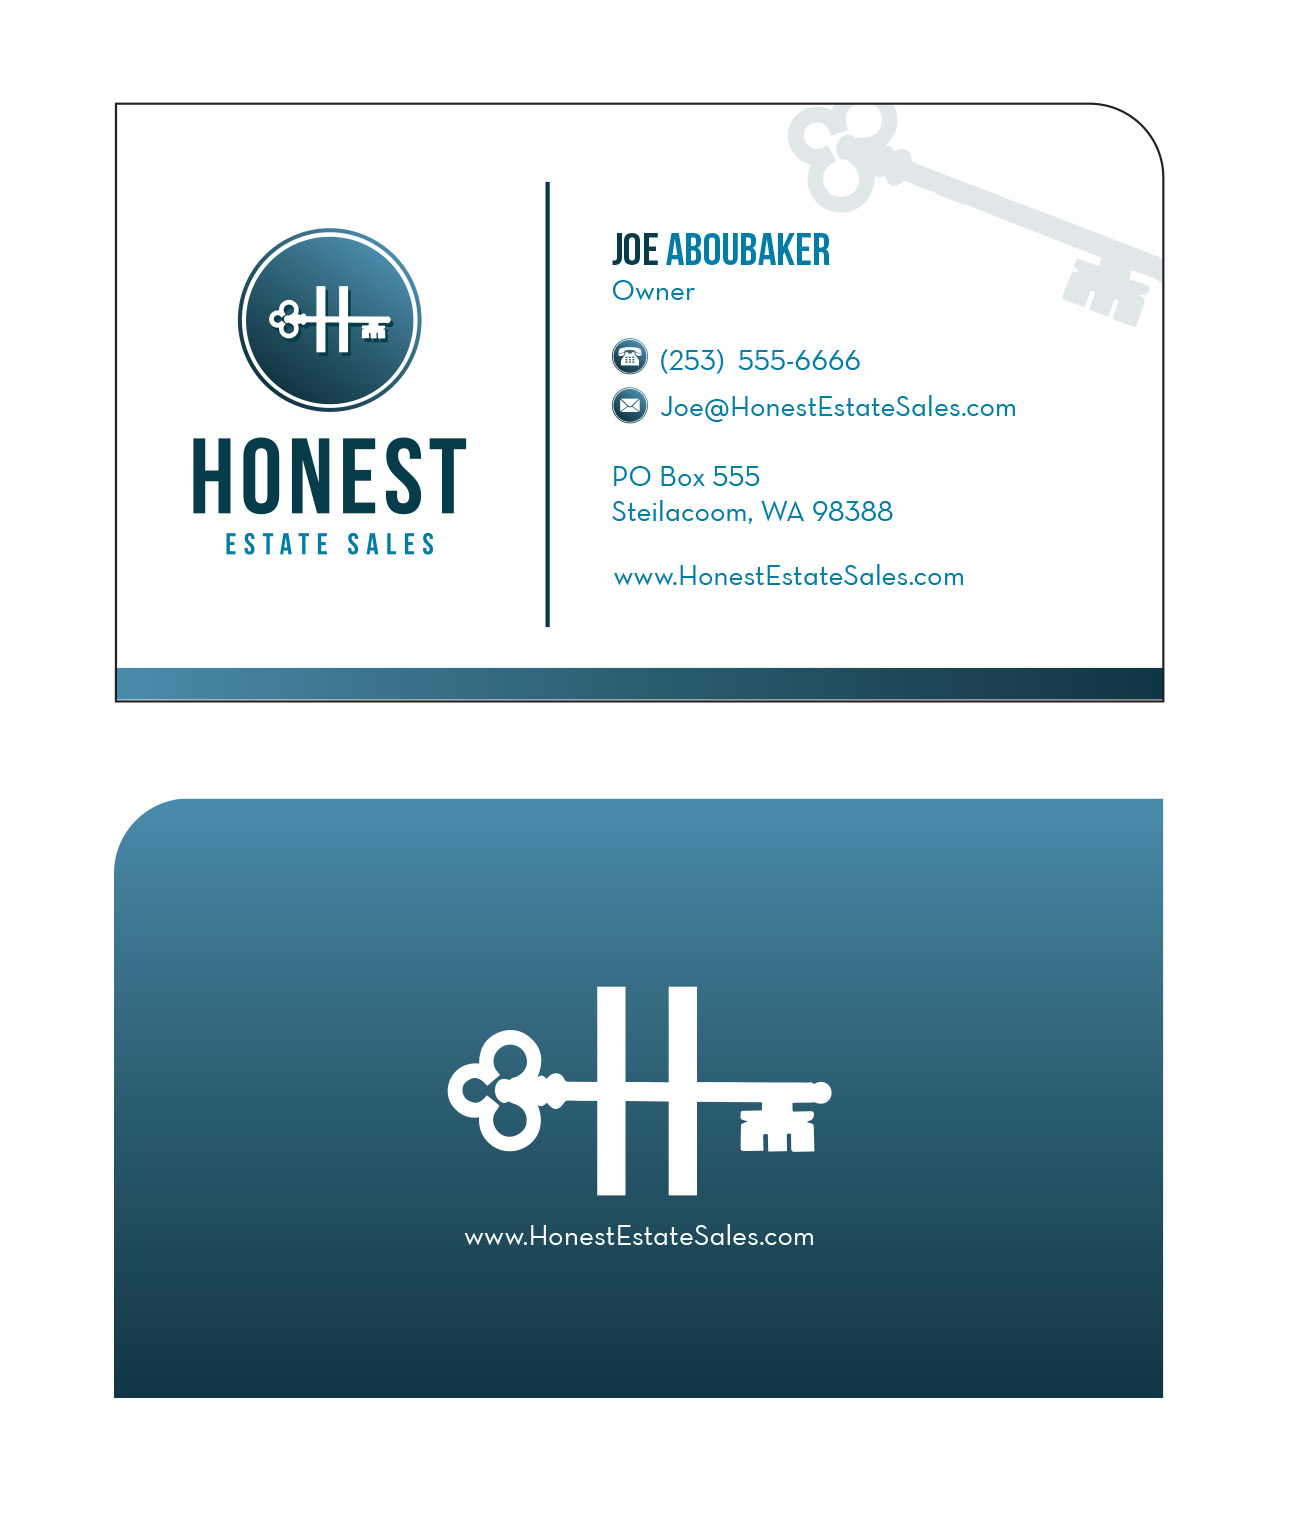 Honest-Estate-Sales-Business-Cards